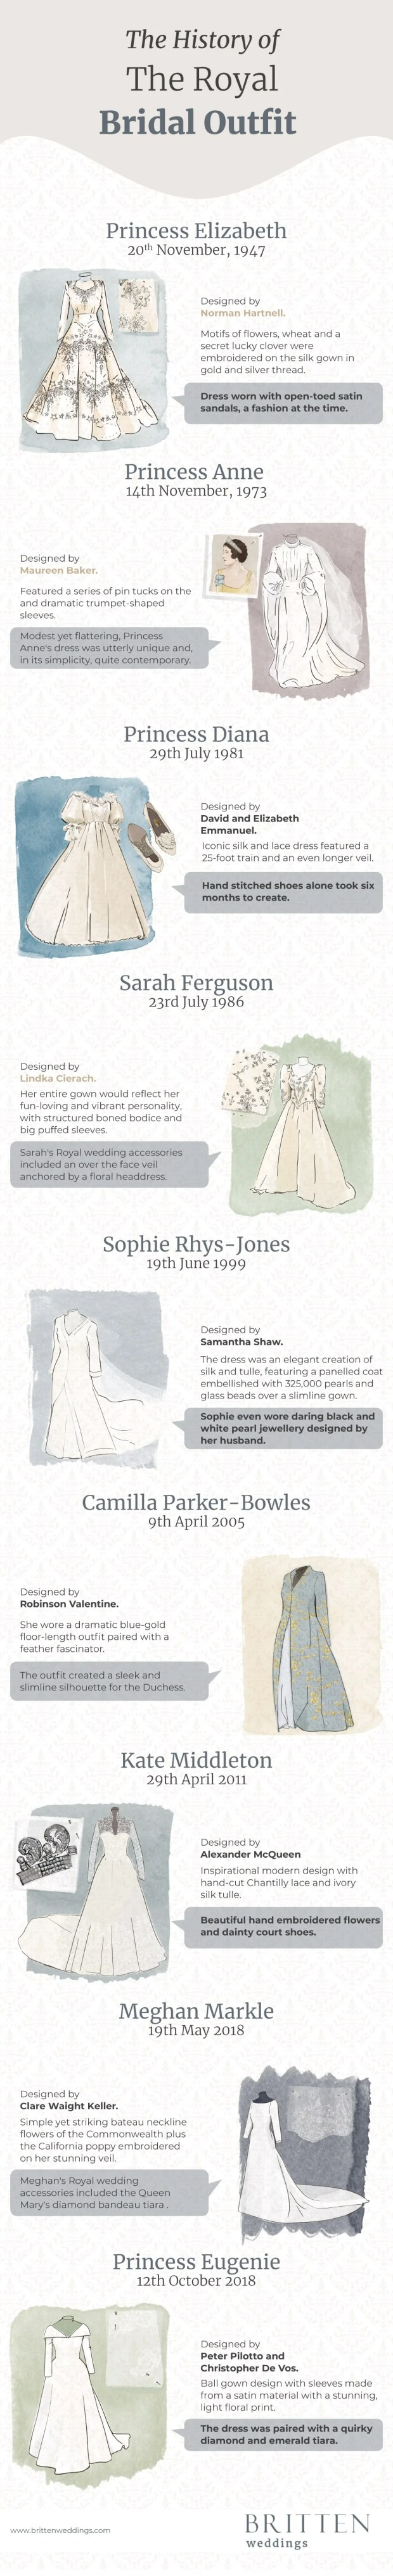 History of the Royal Bridal Outfit Infographic